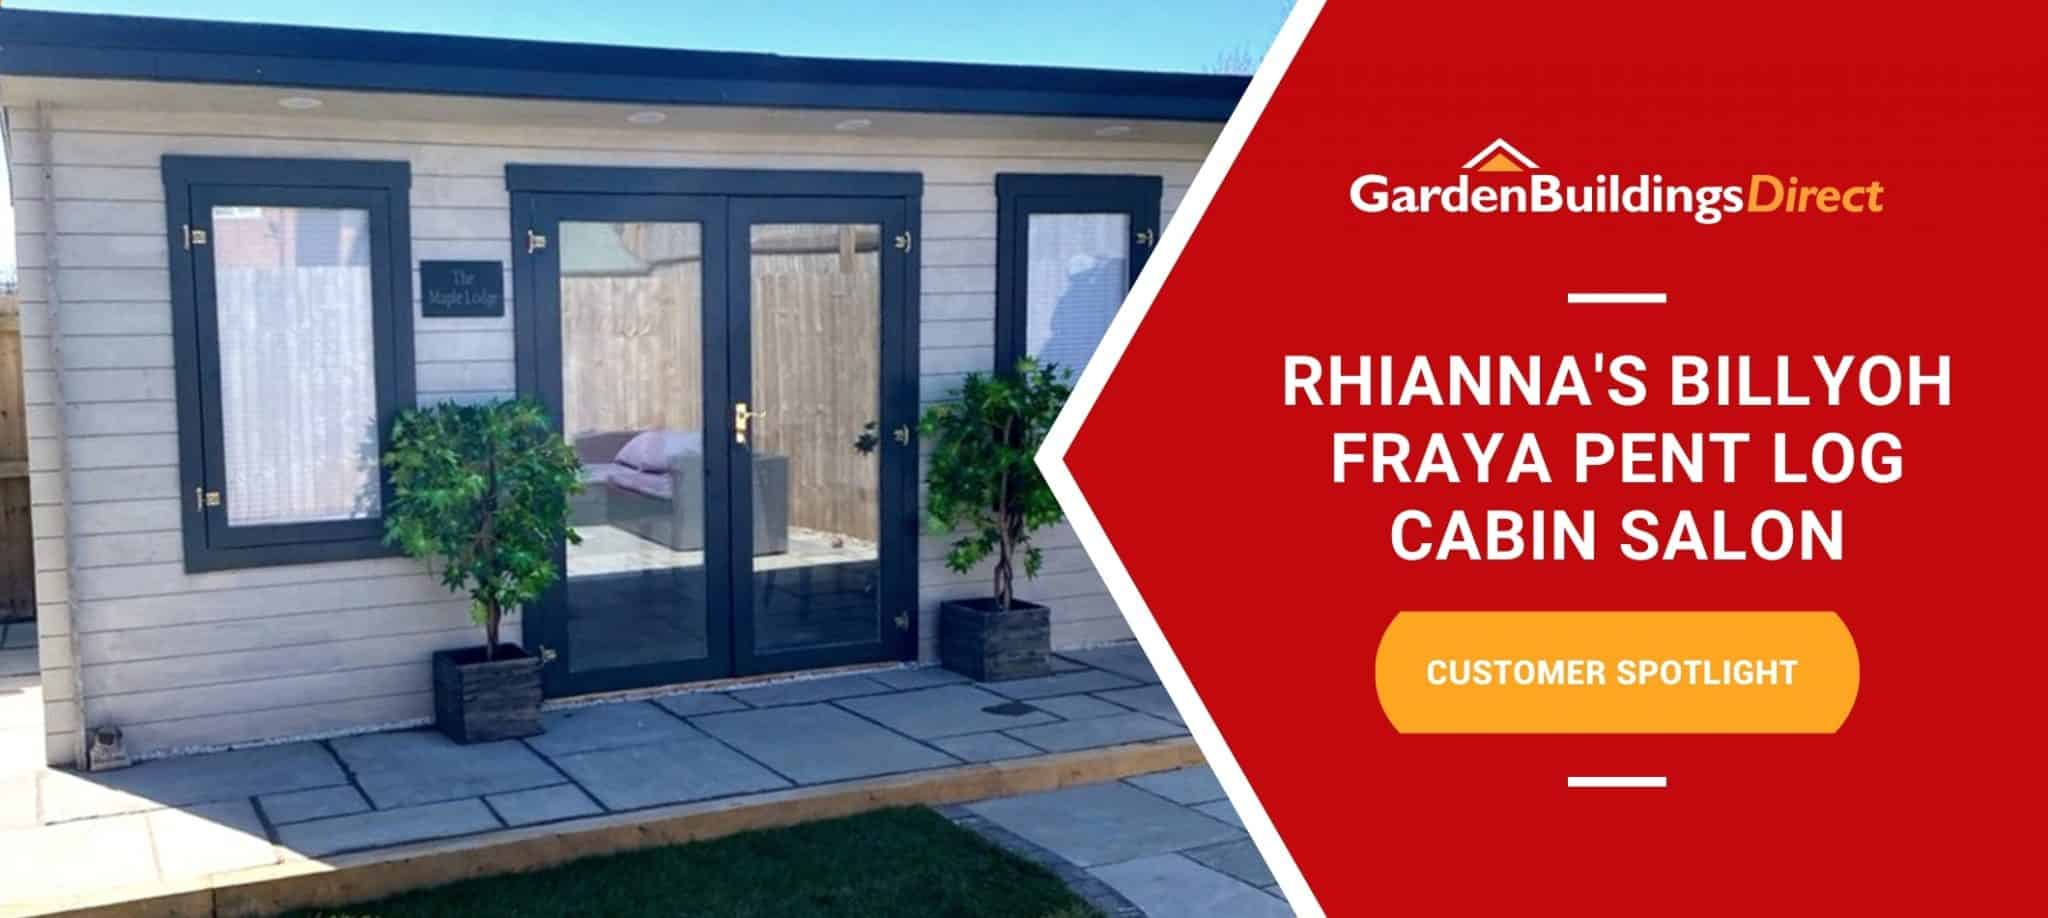 BillyOh Fraya Pent Log Cabin With Garden Buildings Direct logo and red arrow banner